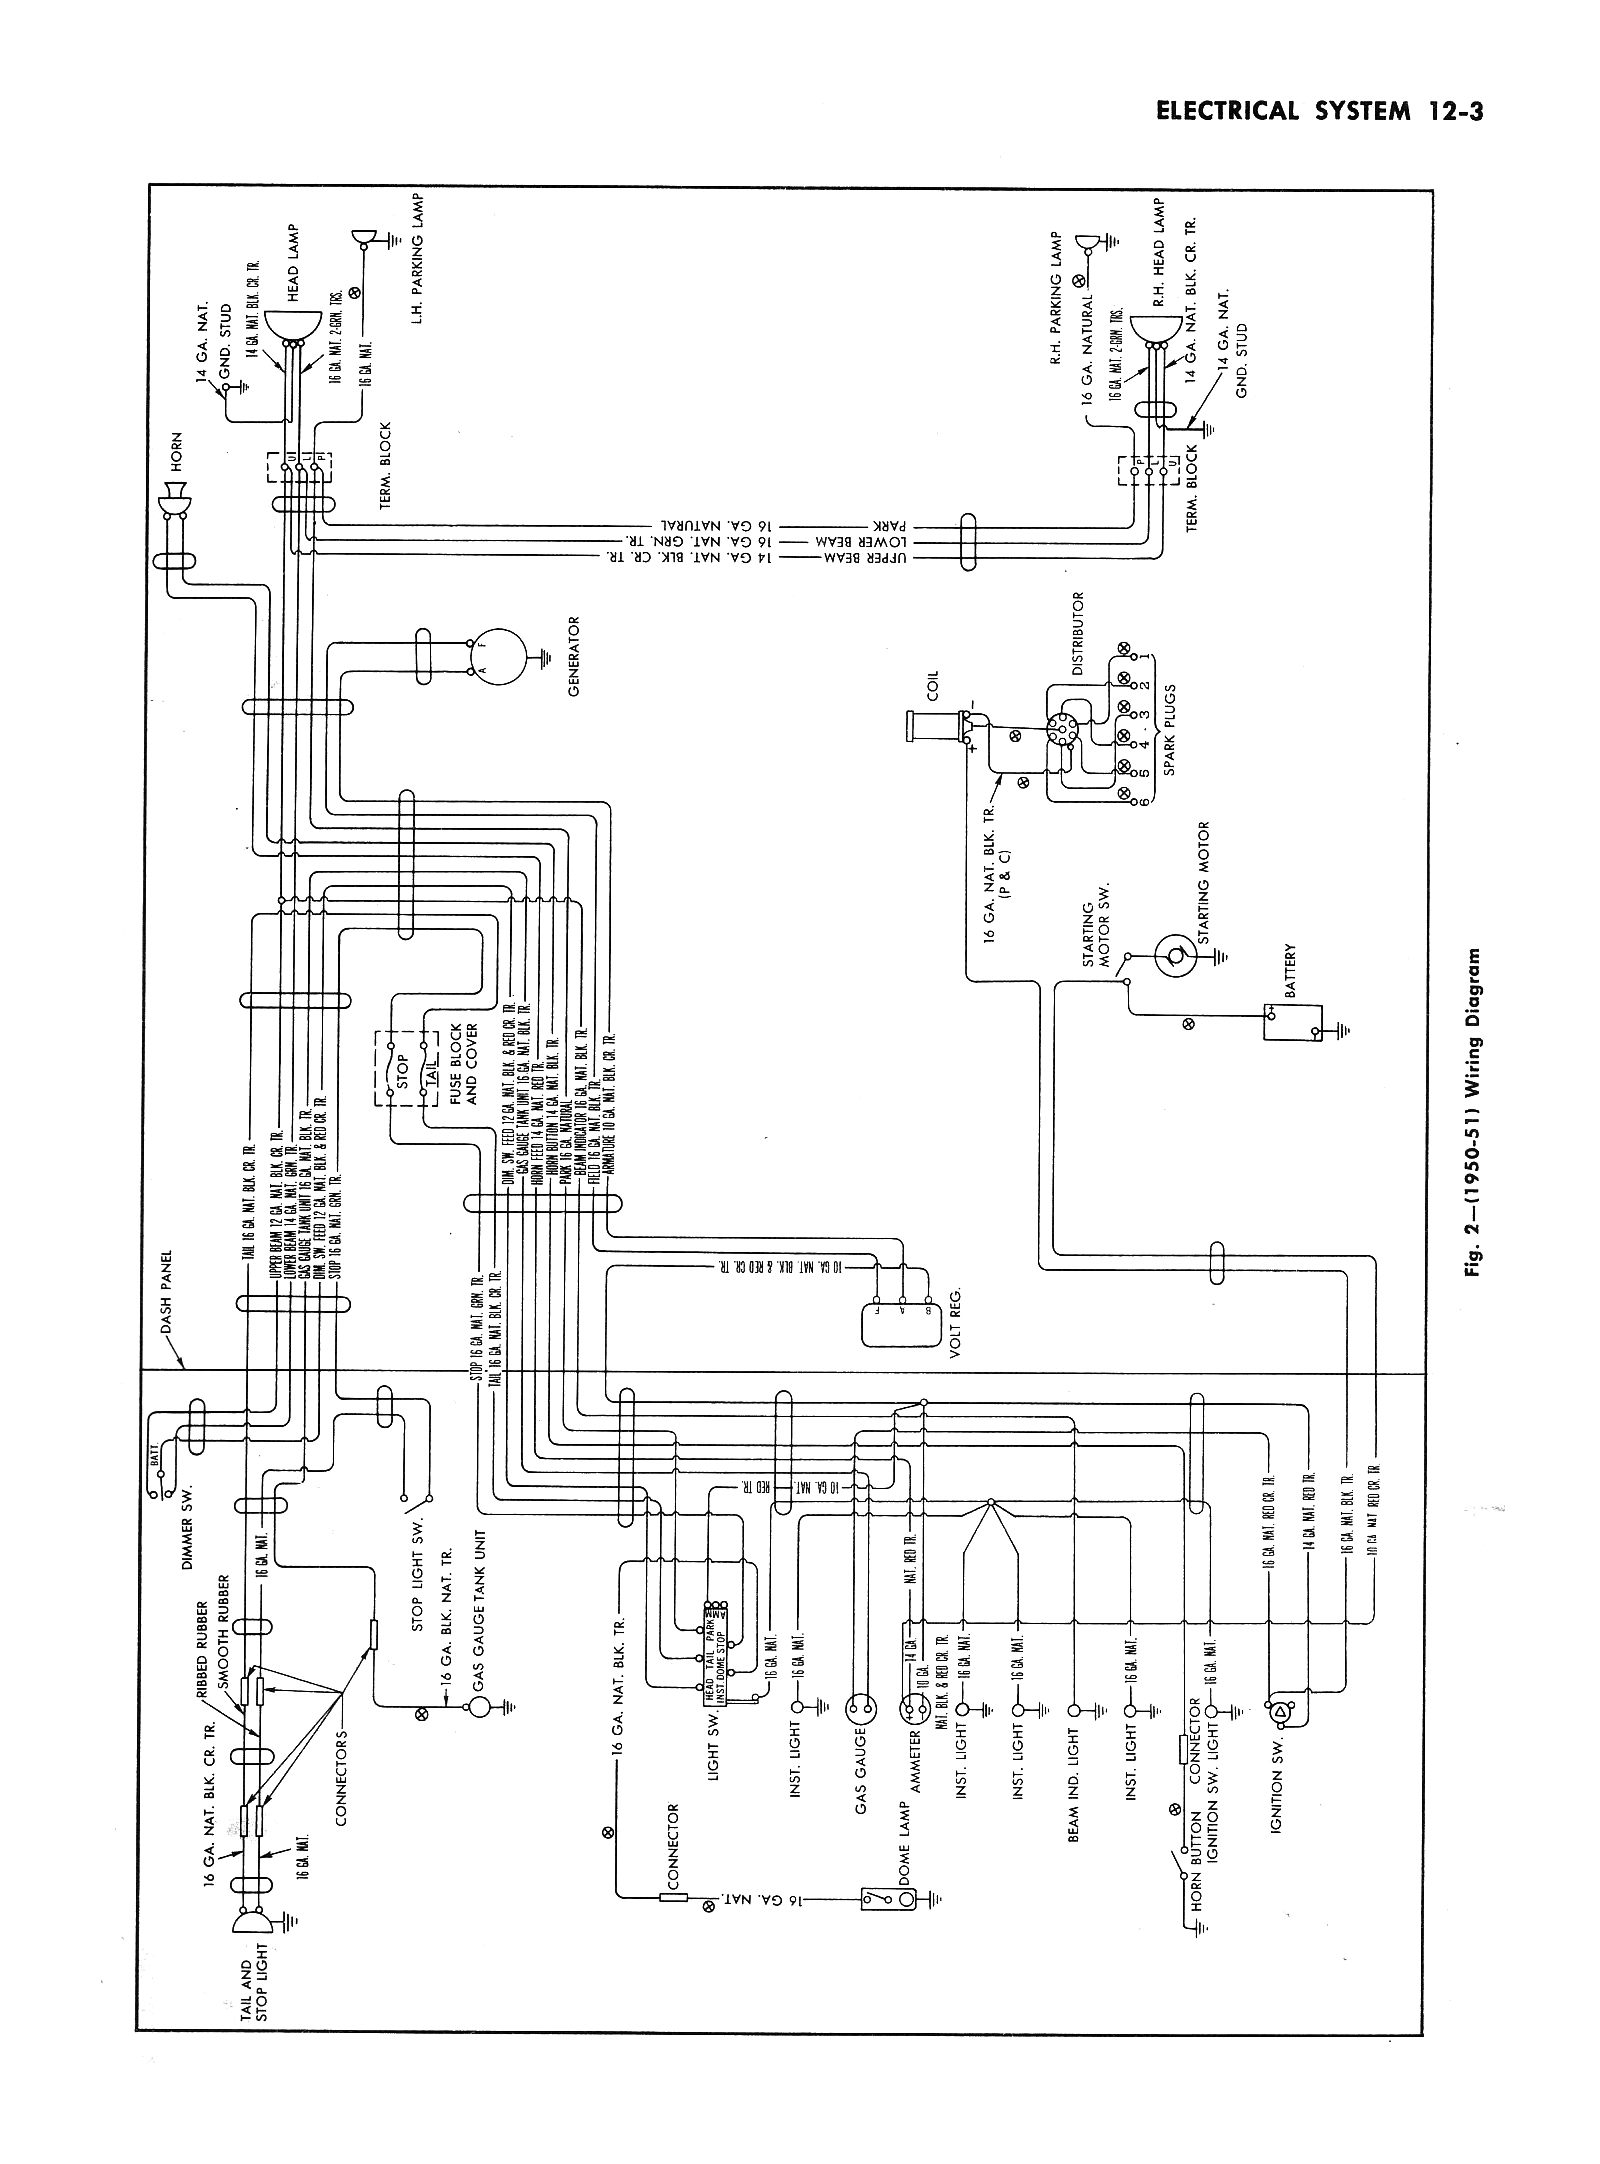 1950 mercury wiring harness wiring diagram u2022 rh msblog co Mopar Wiring Diagrams Generation 4 Wiring Diagram Chevy